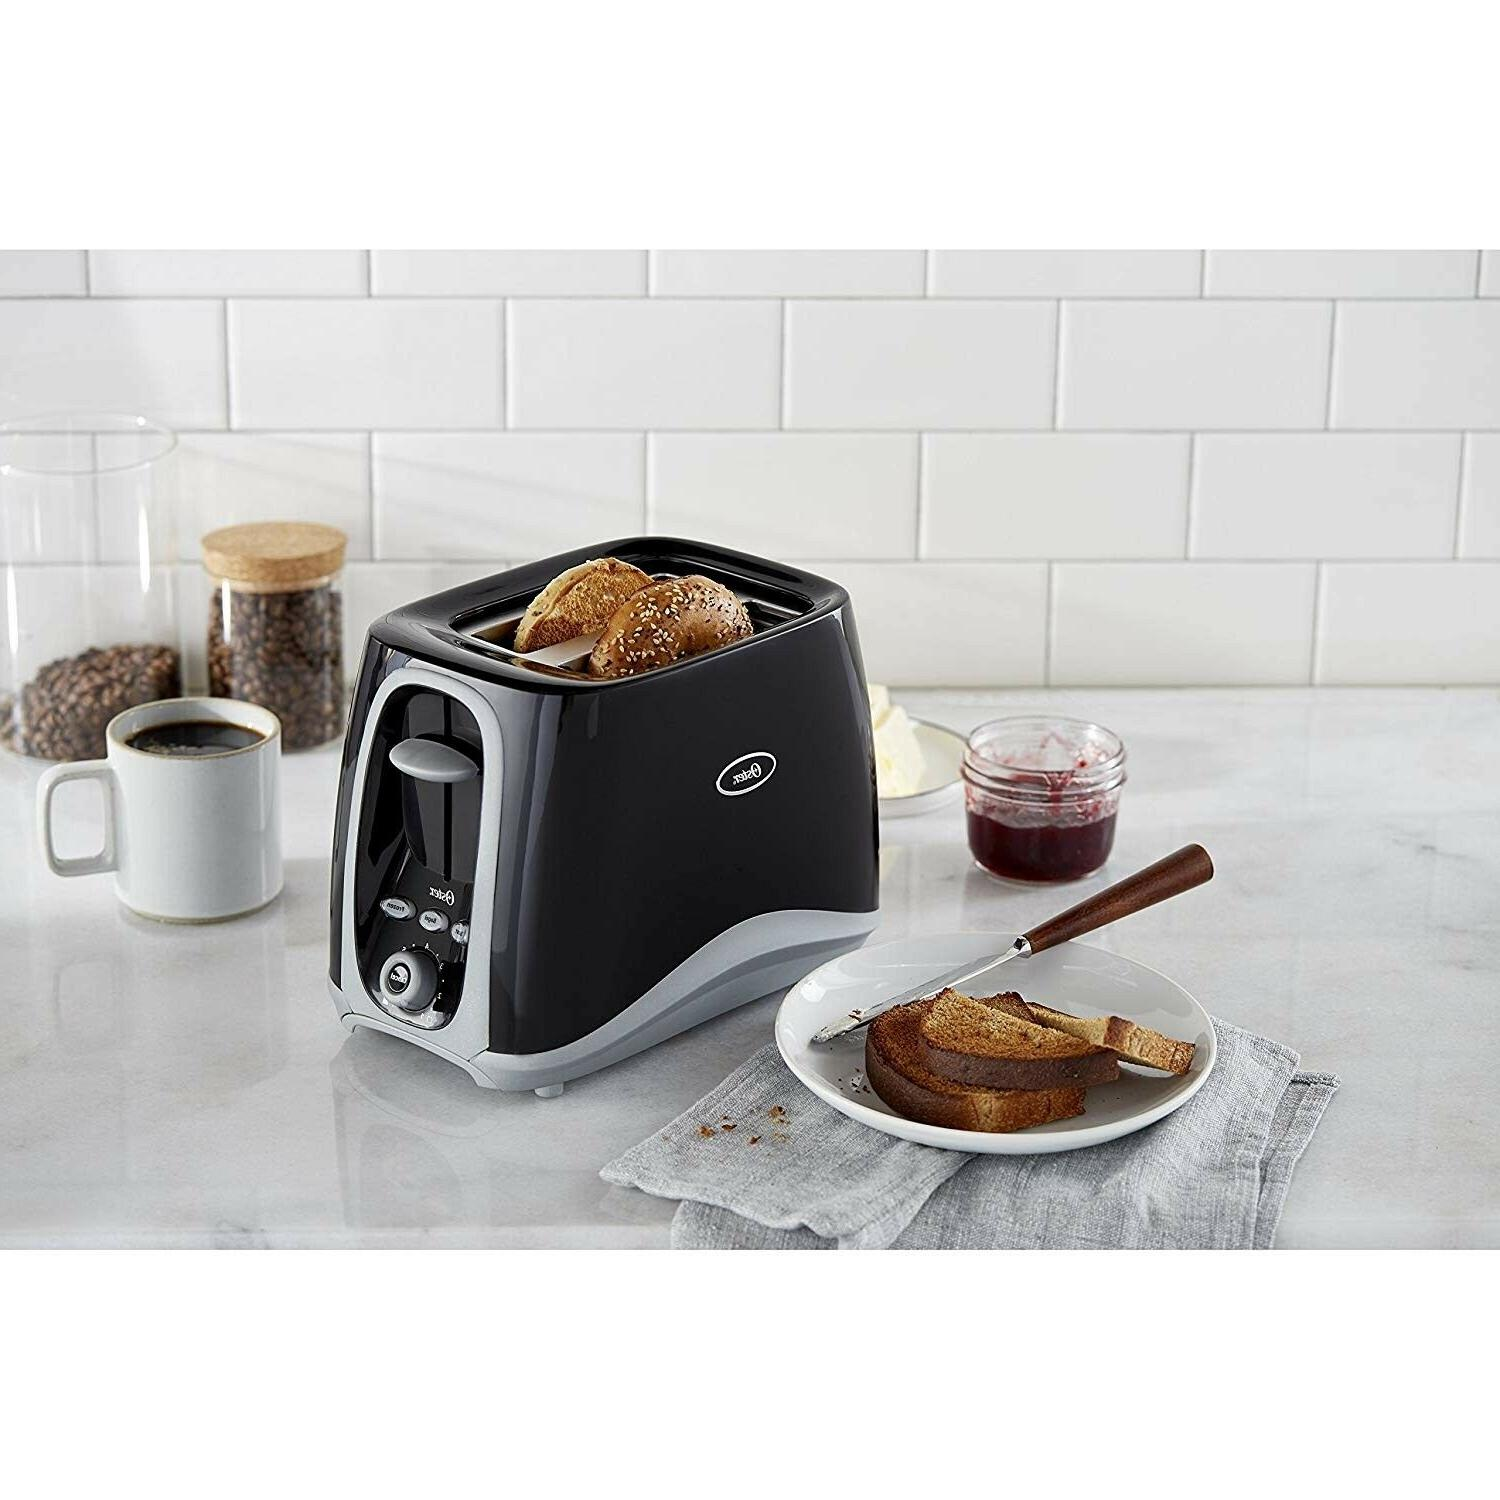 Oster Toaster, Black